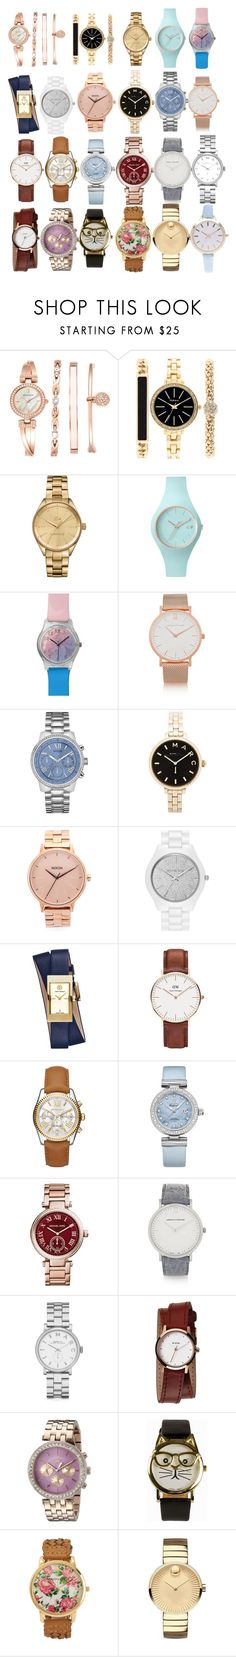 """""""What time is it?!"""" by marialaura-lattaruolo ❤ liked on Polyvore featuring moda, Anne Klein, Style & Co., Lacoste, Ice-Watch, May28th, Larsson & Jennings, GUESS, Marc by Marc Jacobs y Nixon"""